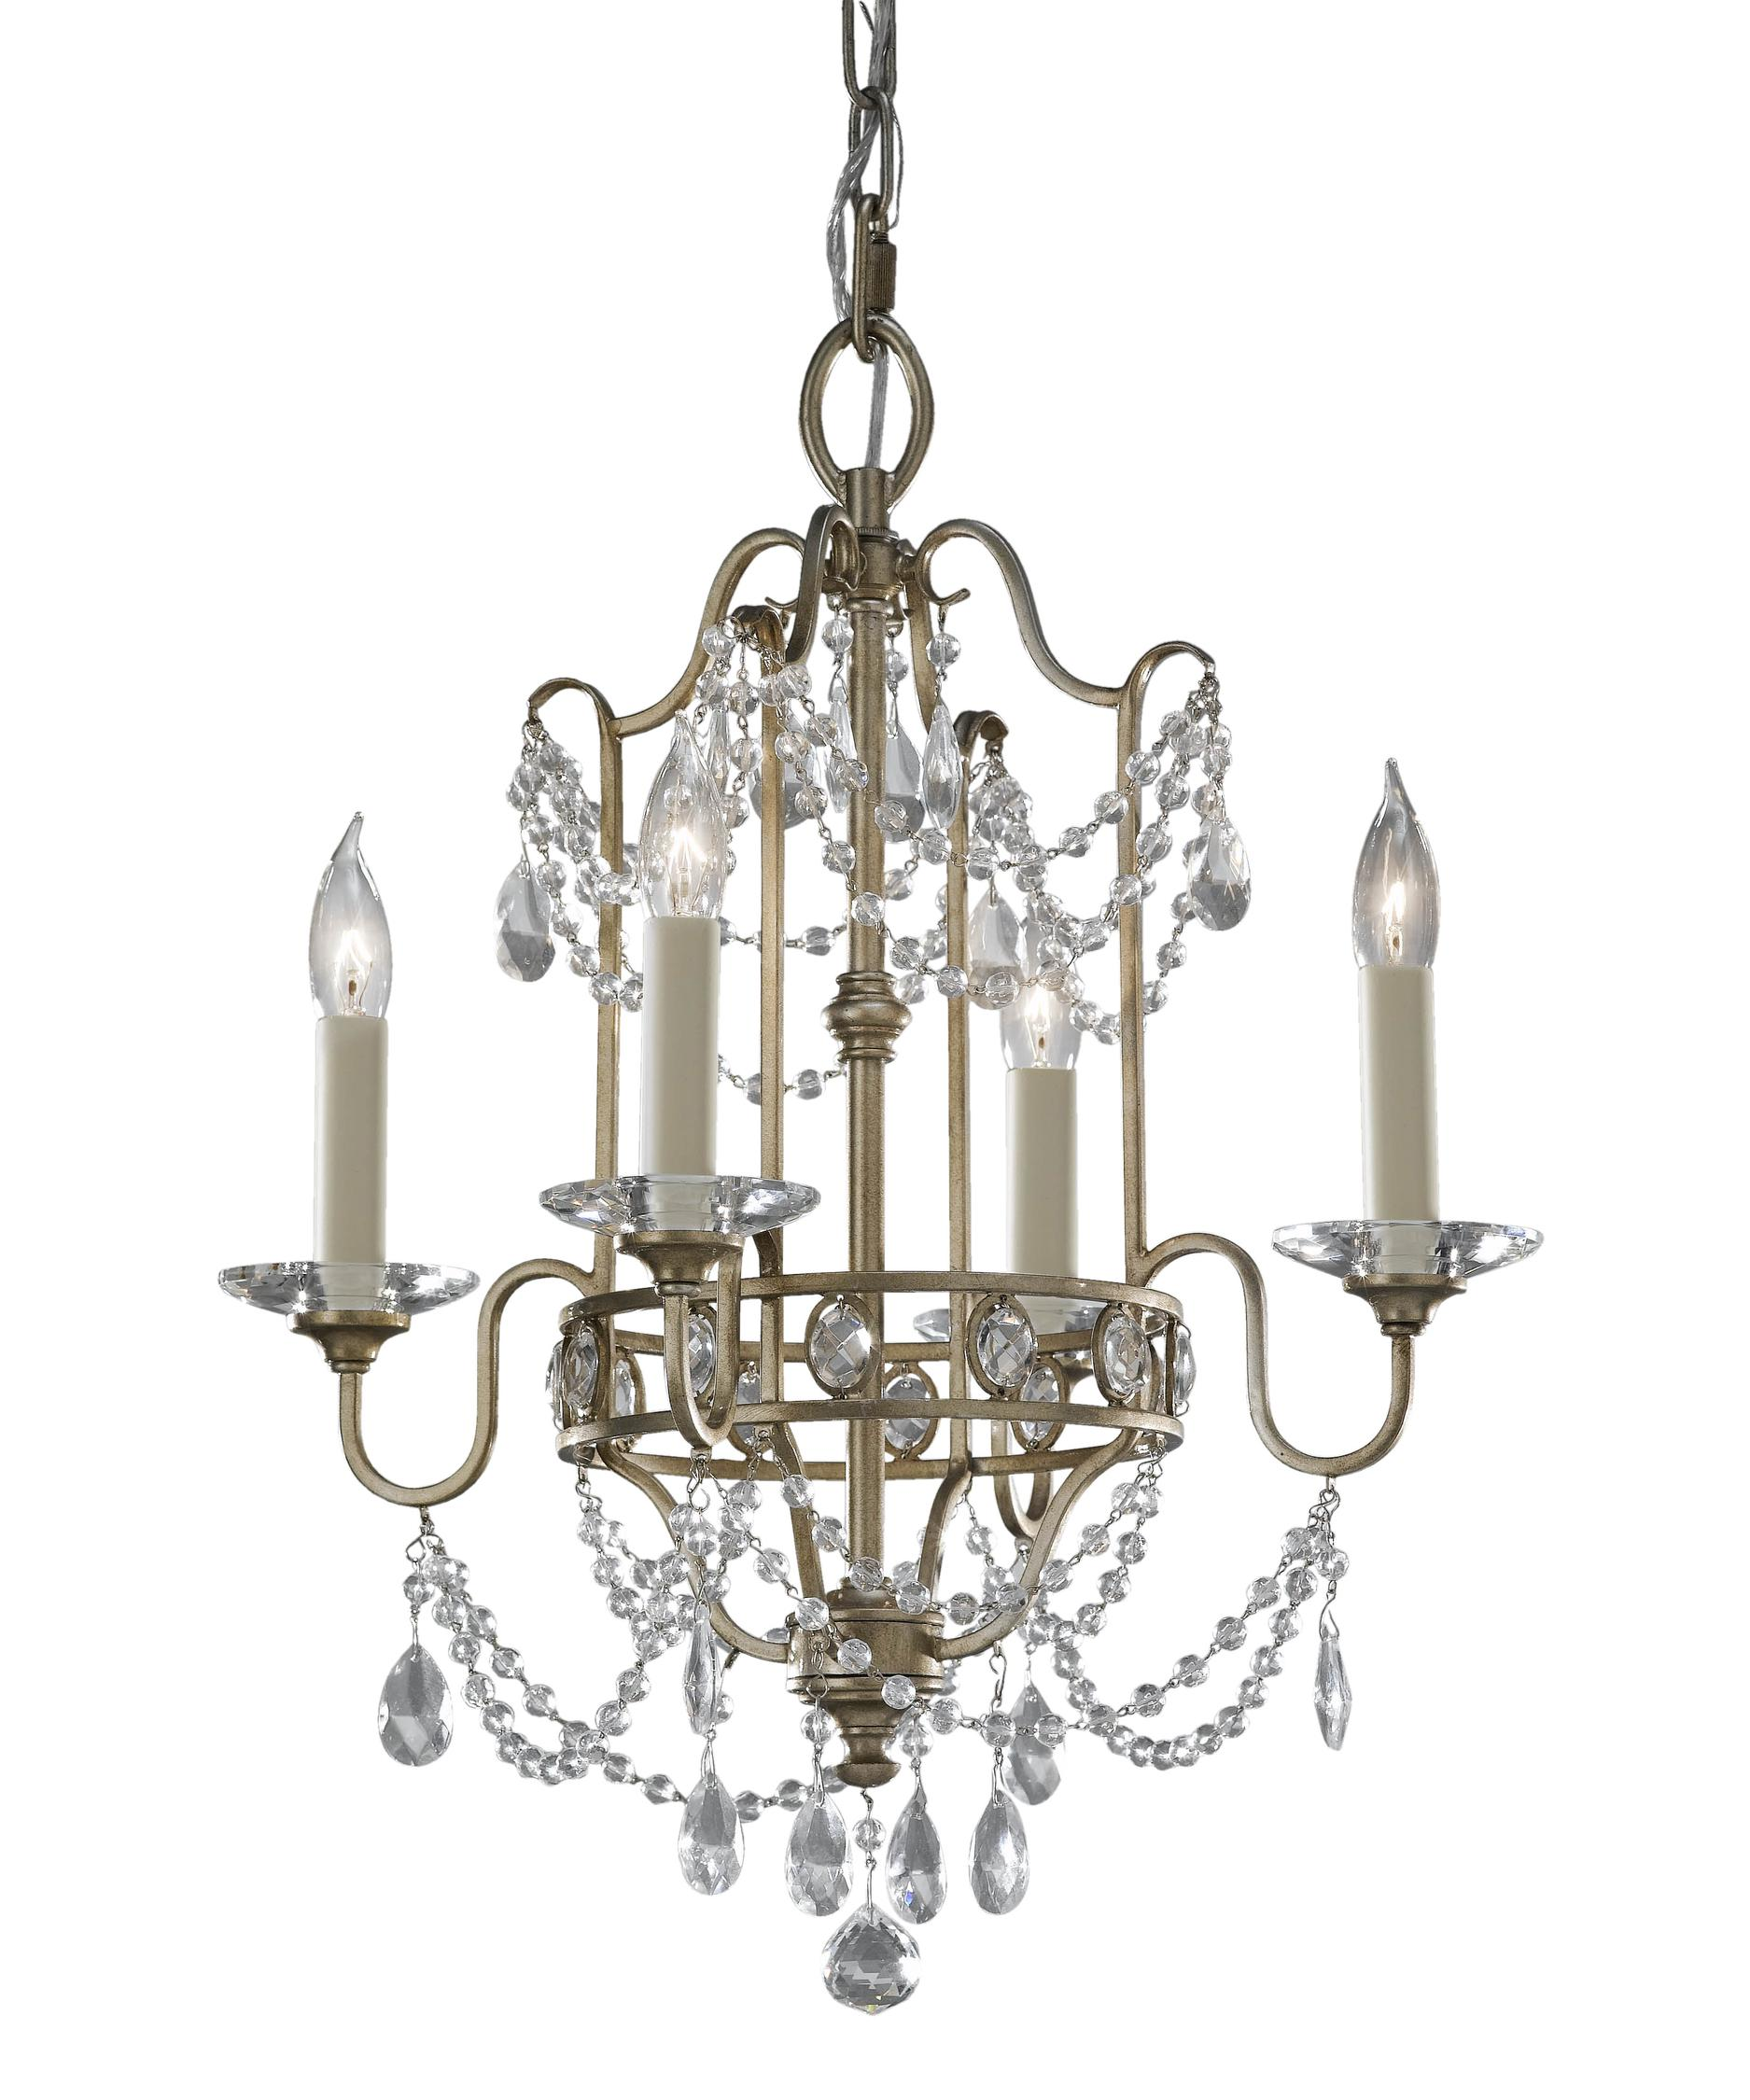 Murray Feiss Gianna 16 Inch Wide 4 Light Mini Chandelier – Murray Feiss Chandeliers